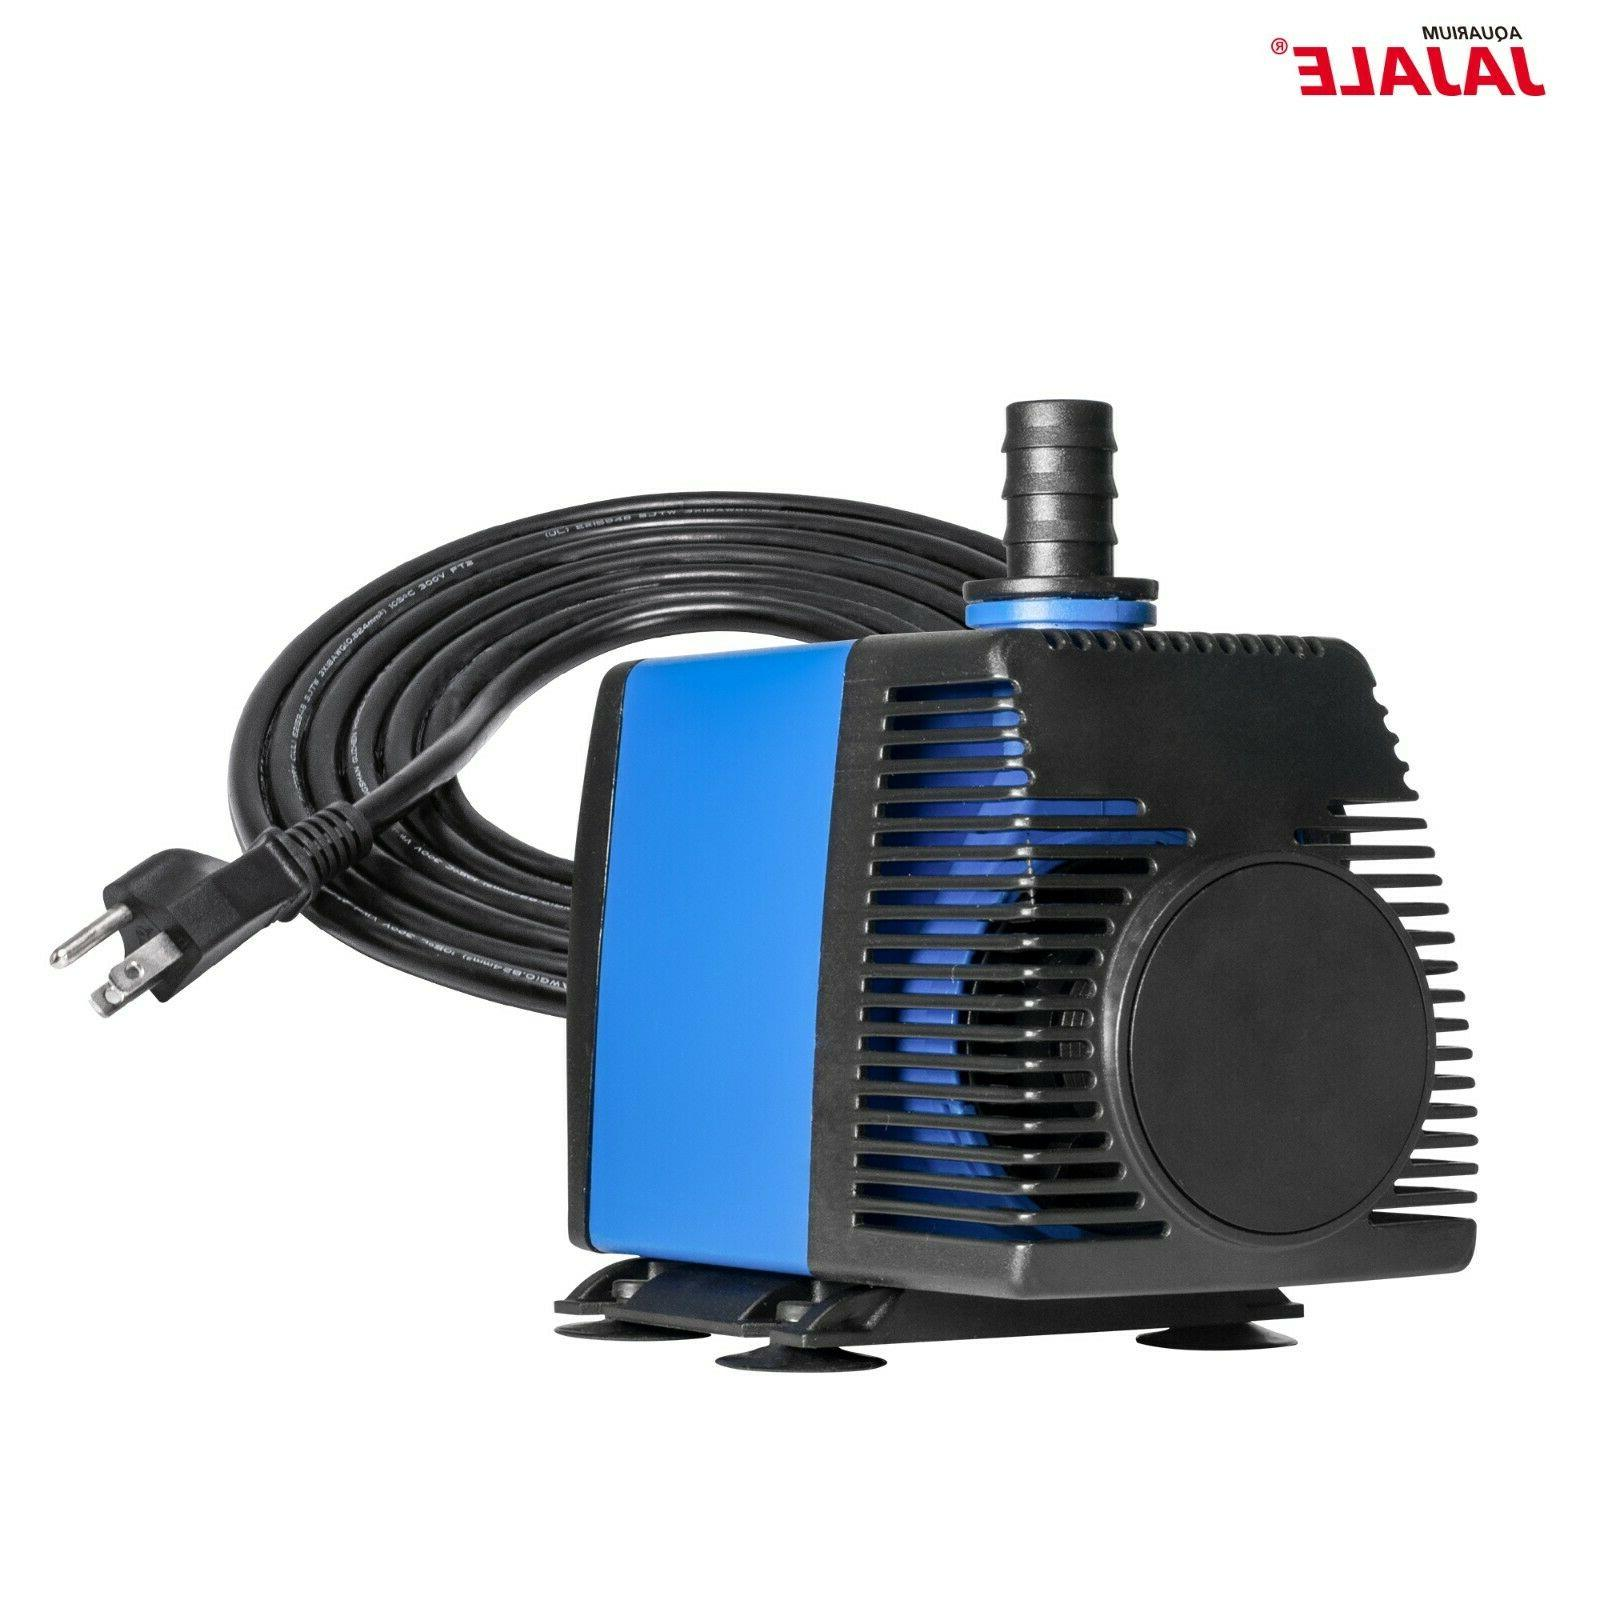 90-1450 Aquarium Tank Submersible Pump